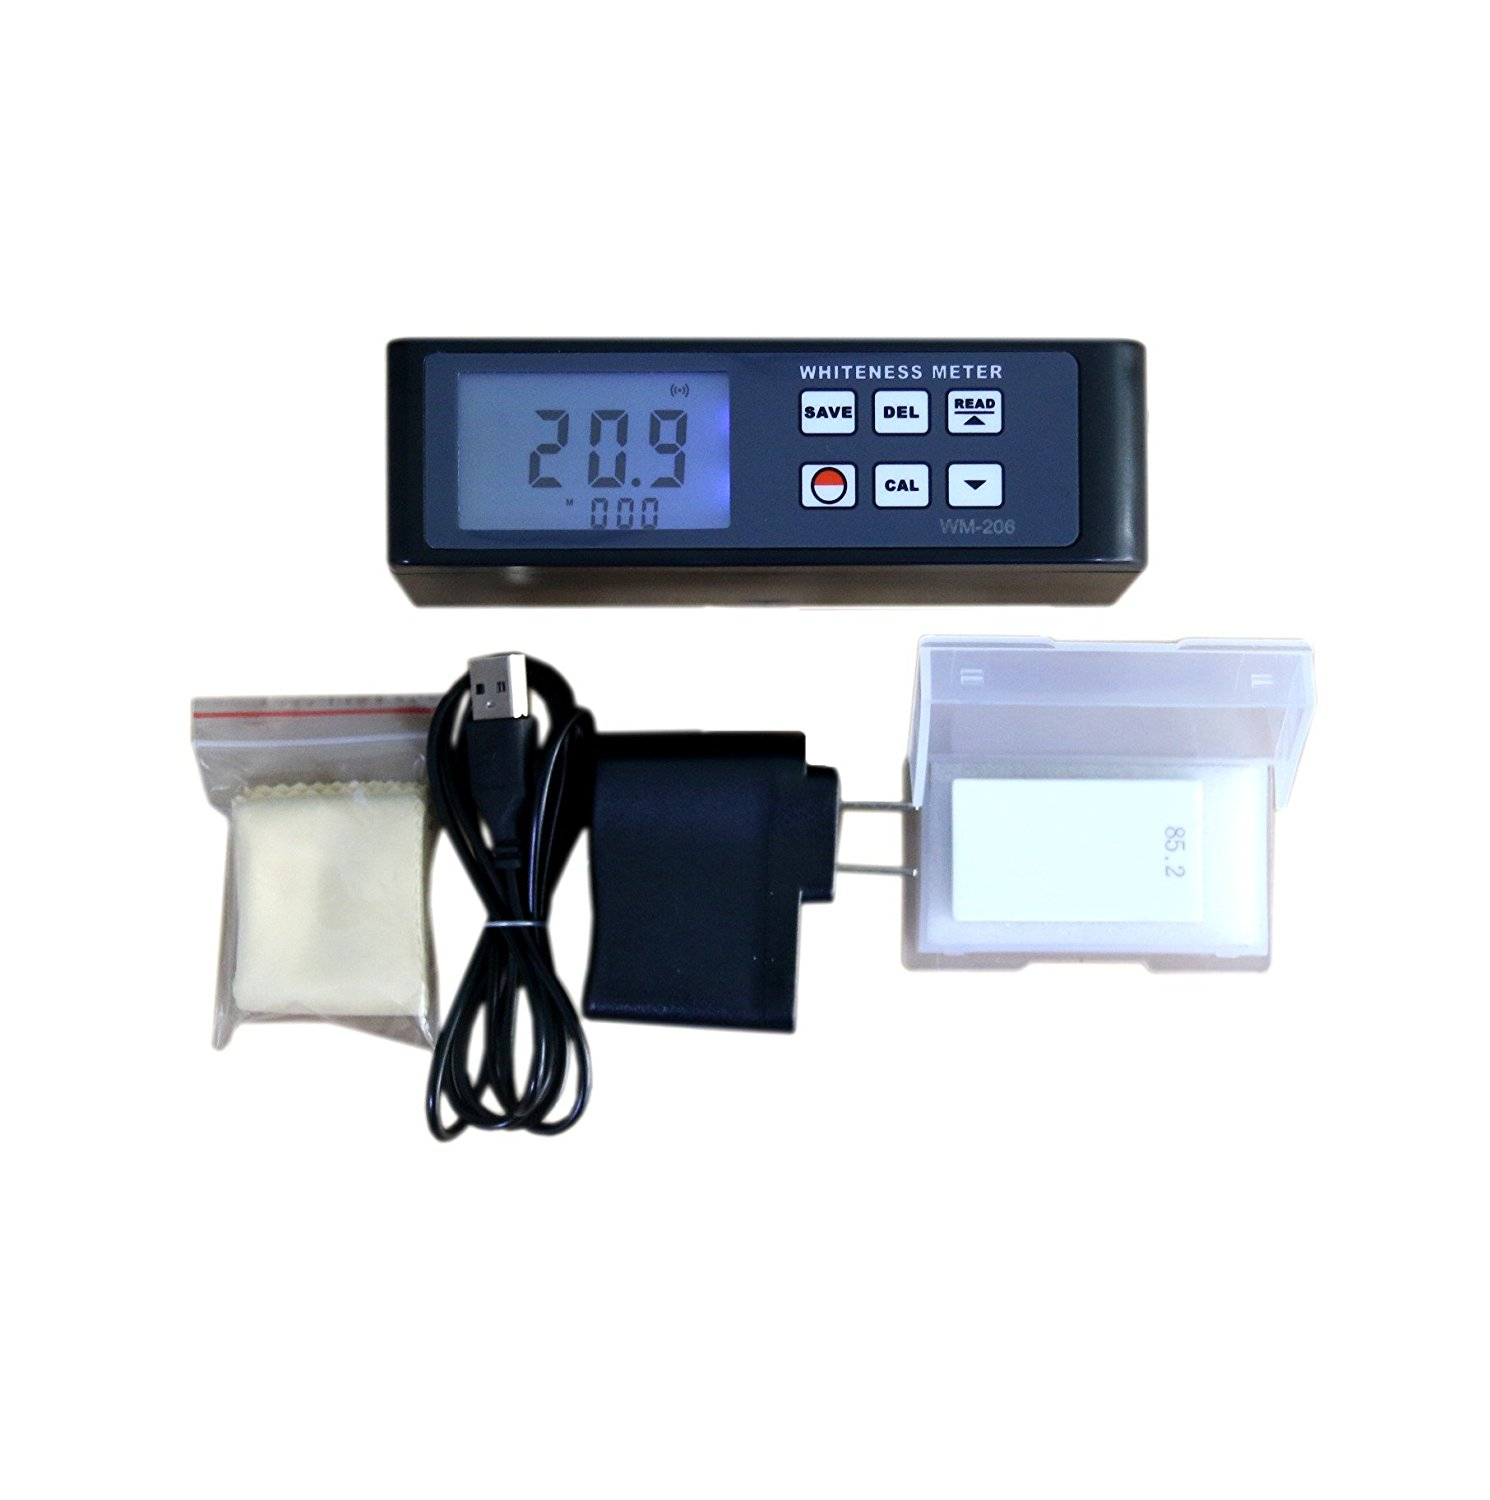 BYQTEC WM-206 Whiteness Meter with Data Memory for Powder Paint Paper Salt